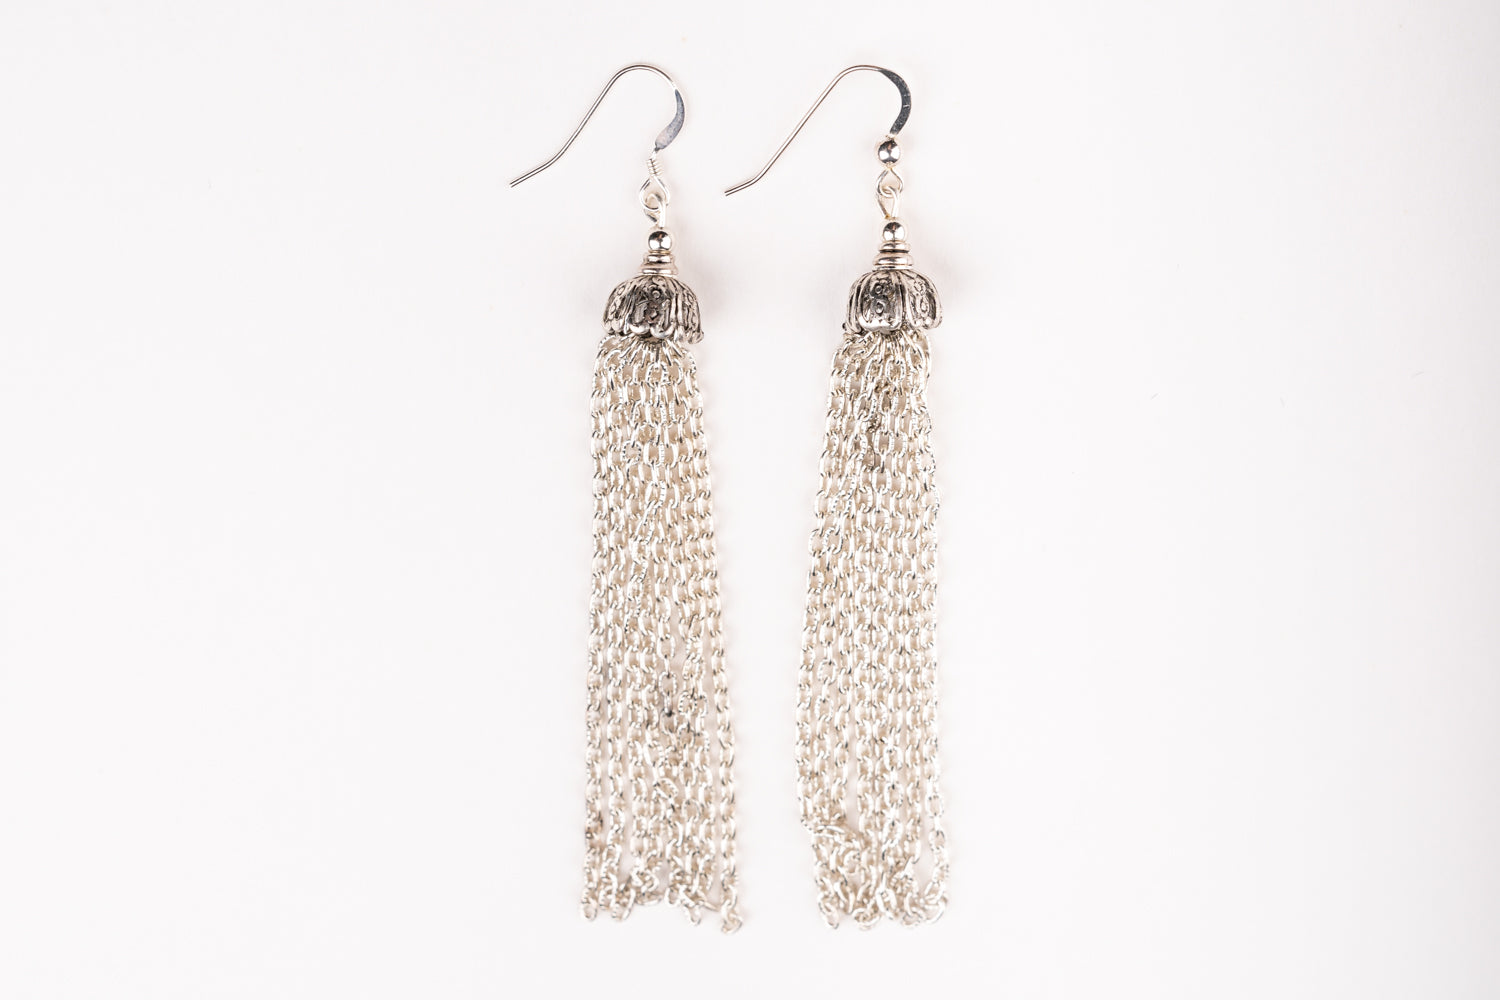 Carolily Finery earrings made from multiple silver plated chain